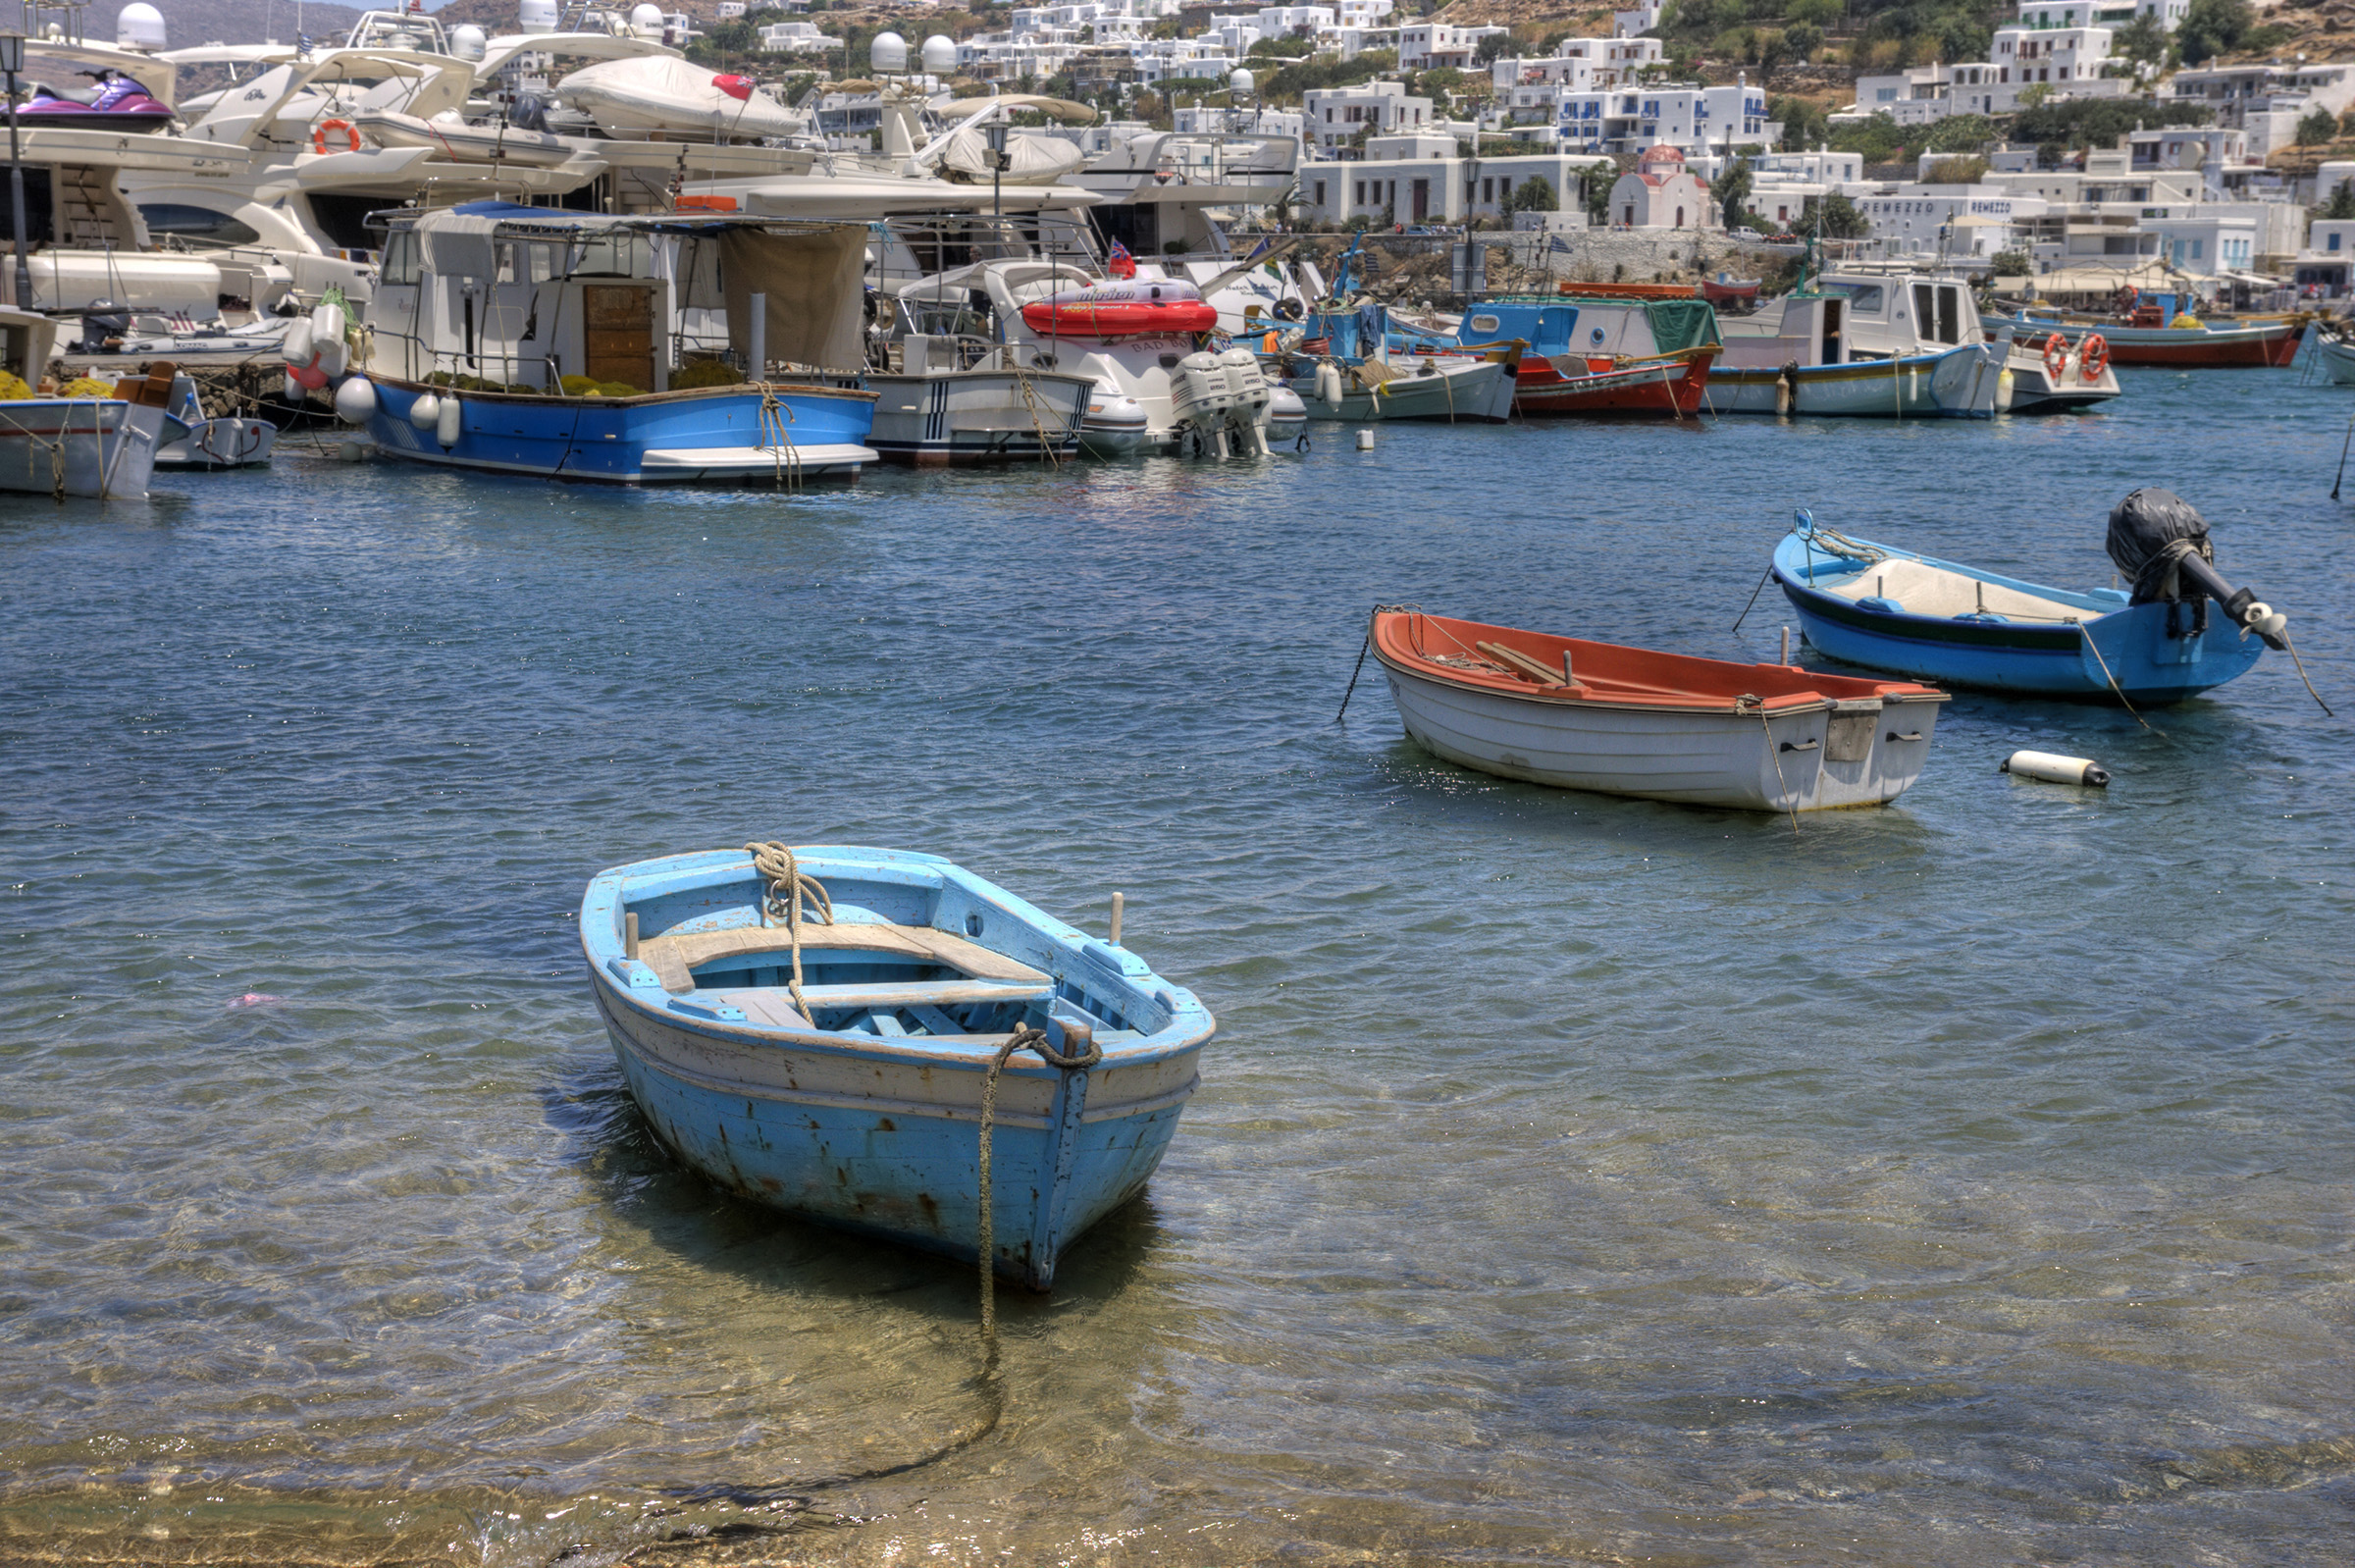 Fishing Boats, Architecture, Mediterranean, Typical, Travel, HQ Photo